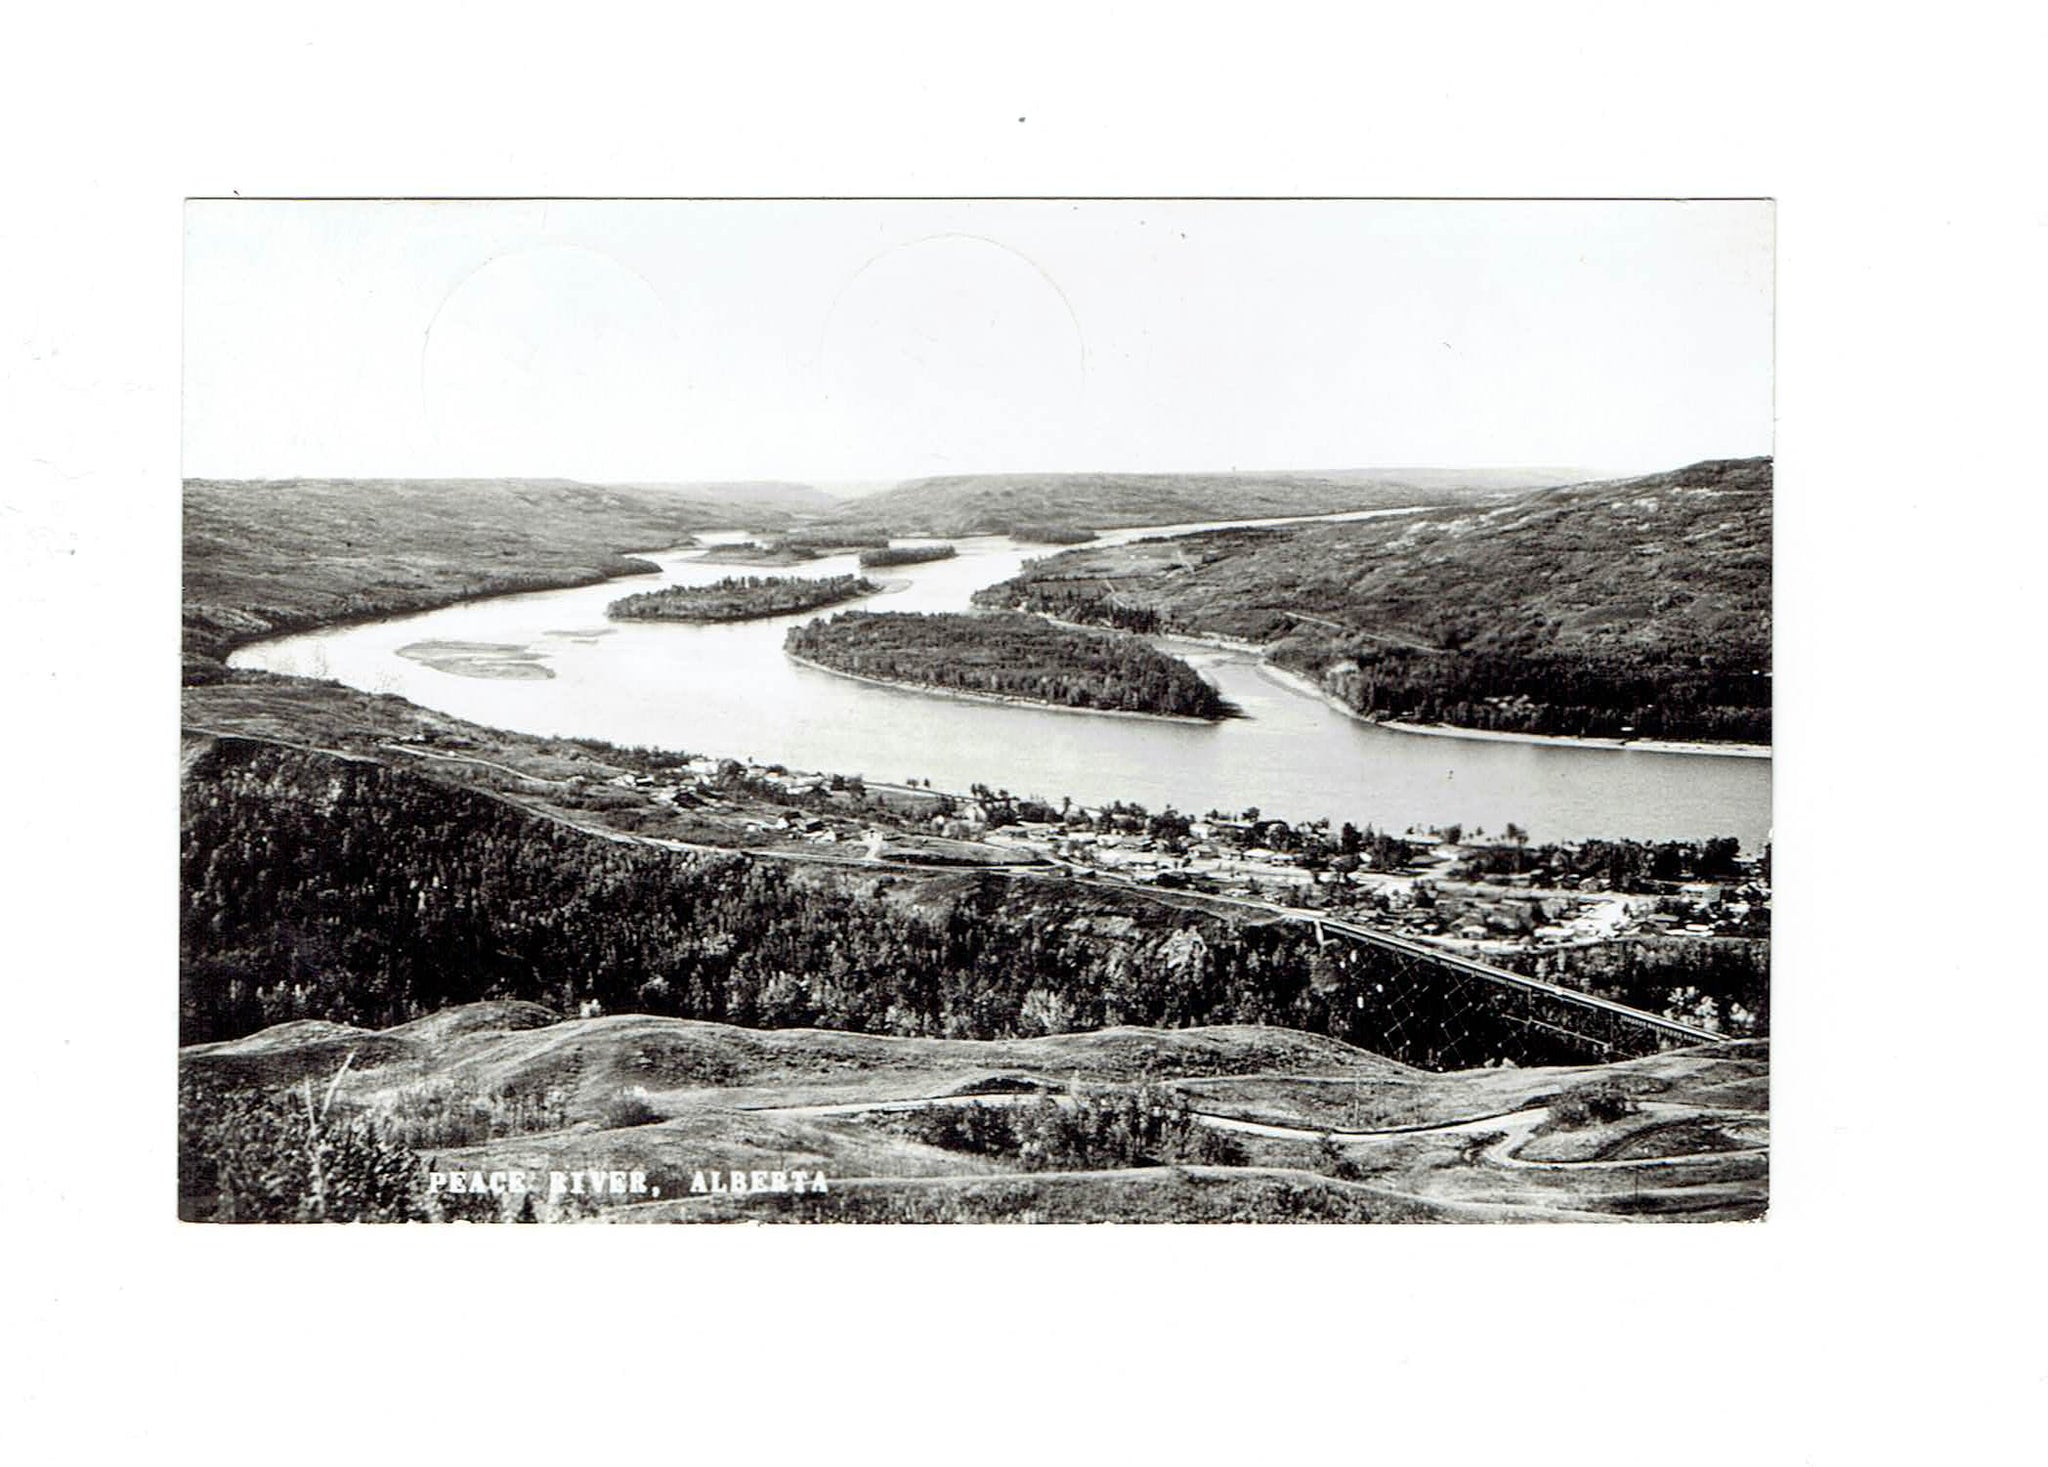 Peace River, AB. RPPC Postcard. Photo Overlooking Peace River. Canada.